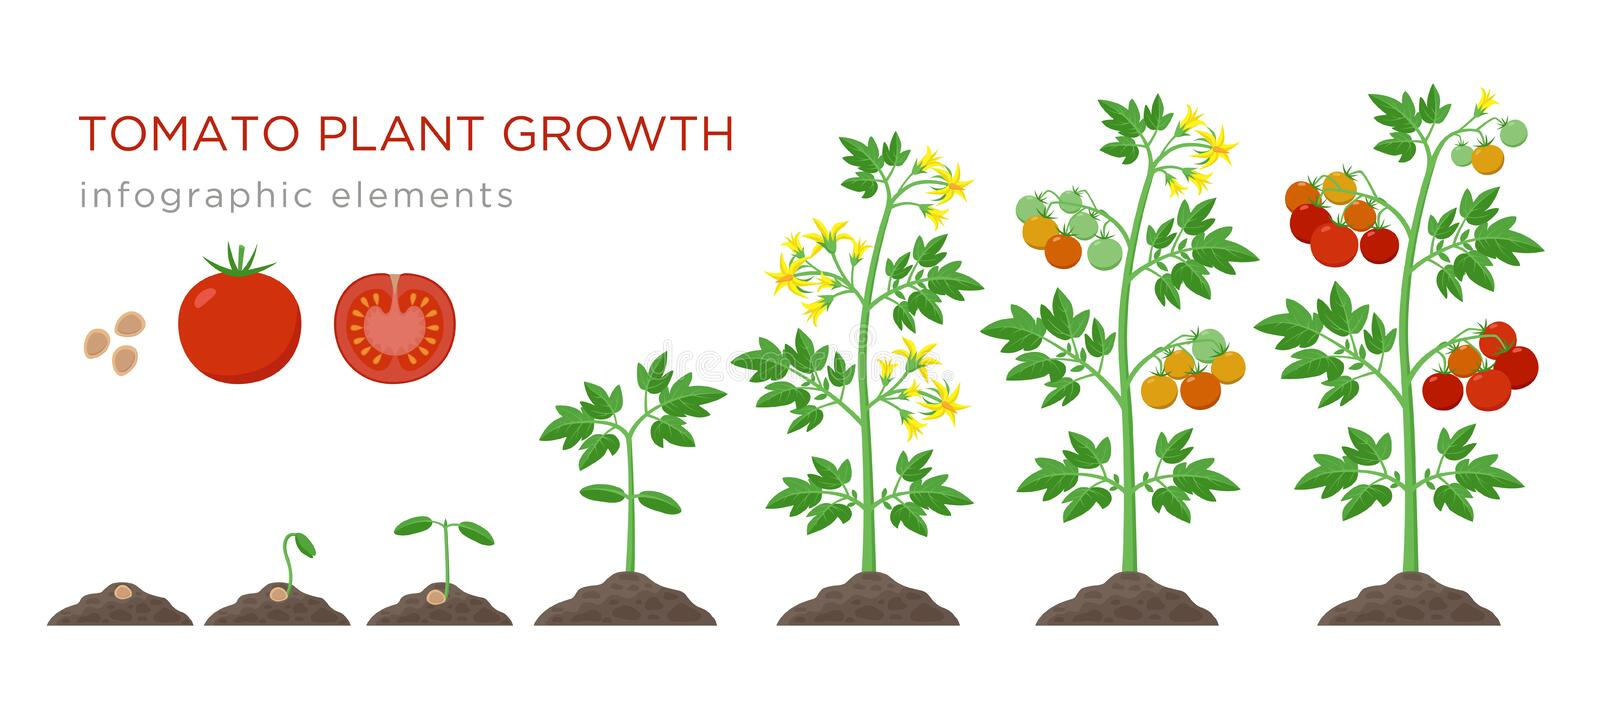 Tomato plant growth stages infographic elements in flat design. Planting process of tomato from seeds sprout to ripe vector illustration